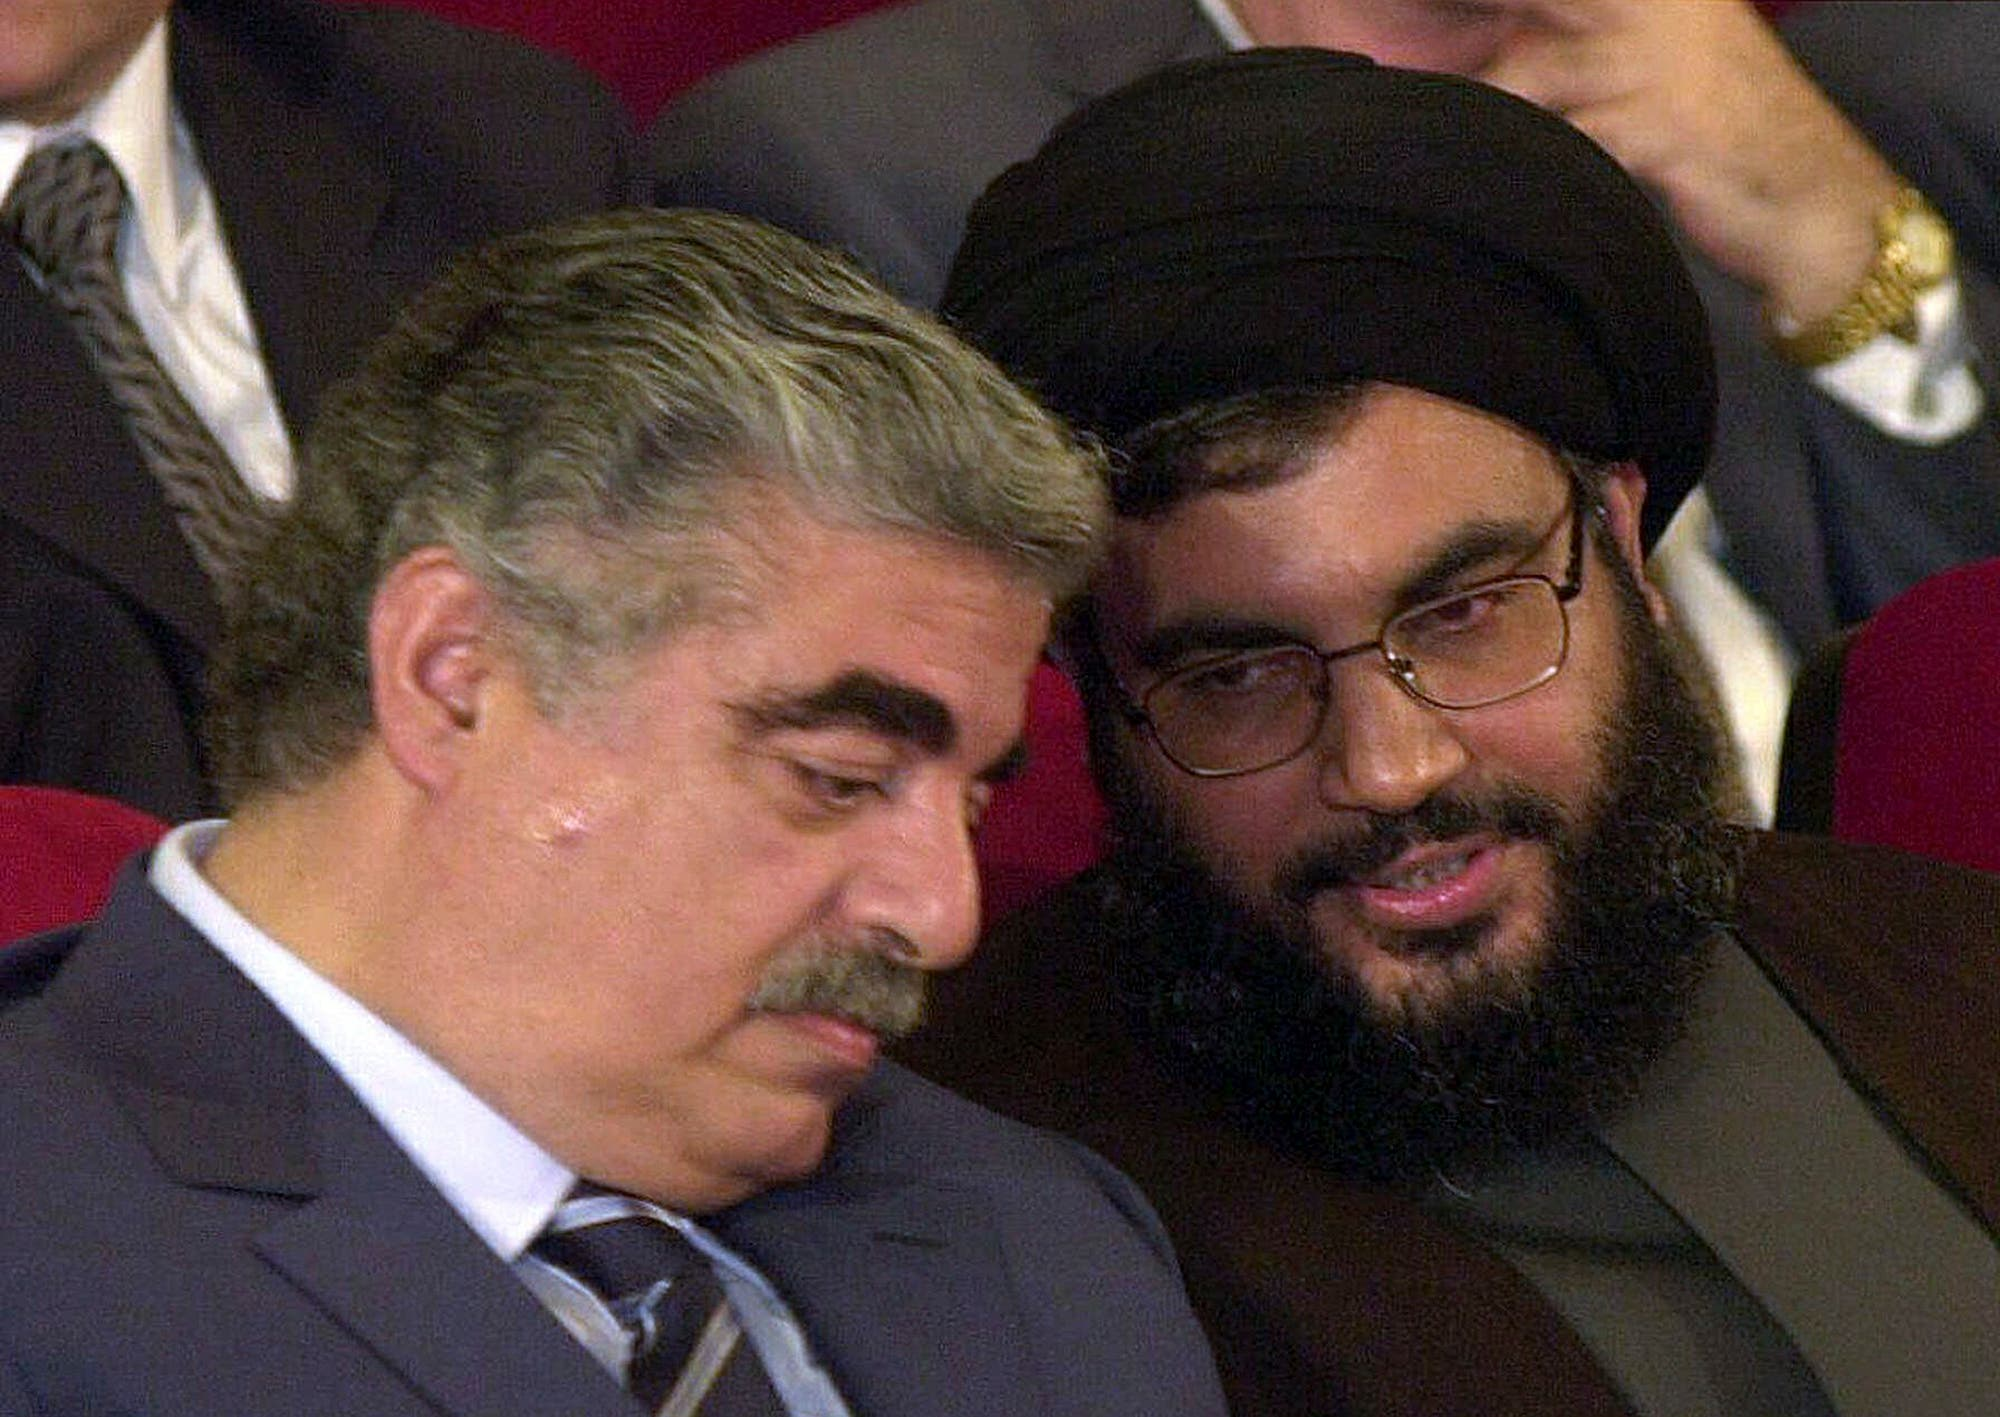 The late Lebanese Prime Minister Rafik Hariri, left, talks with Hezbollah leader Hassan Nasrallah, right, during an official ceremony on May 25, 2001 in Beirut. (File photo: AP)